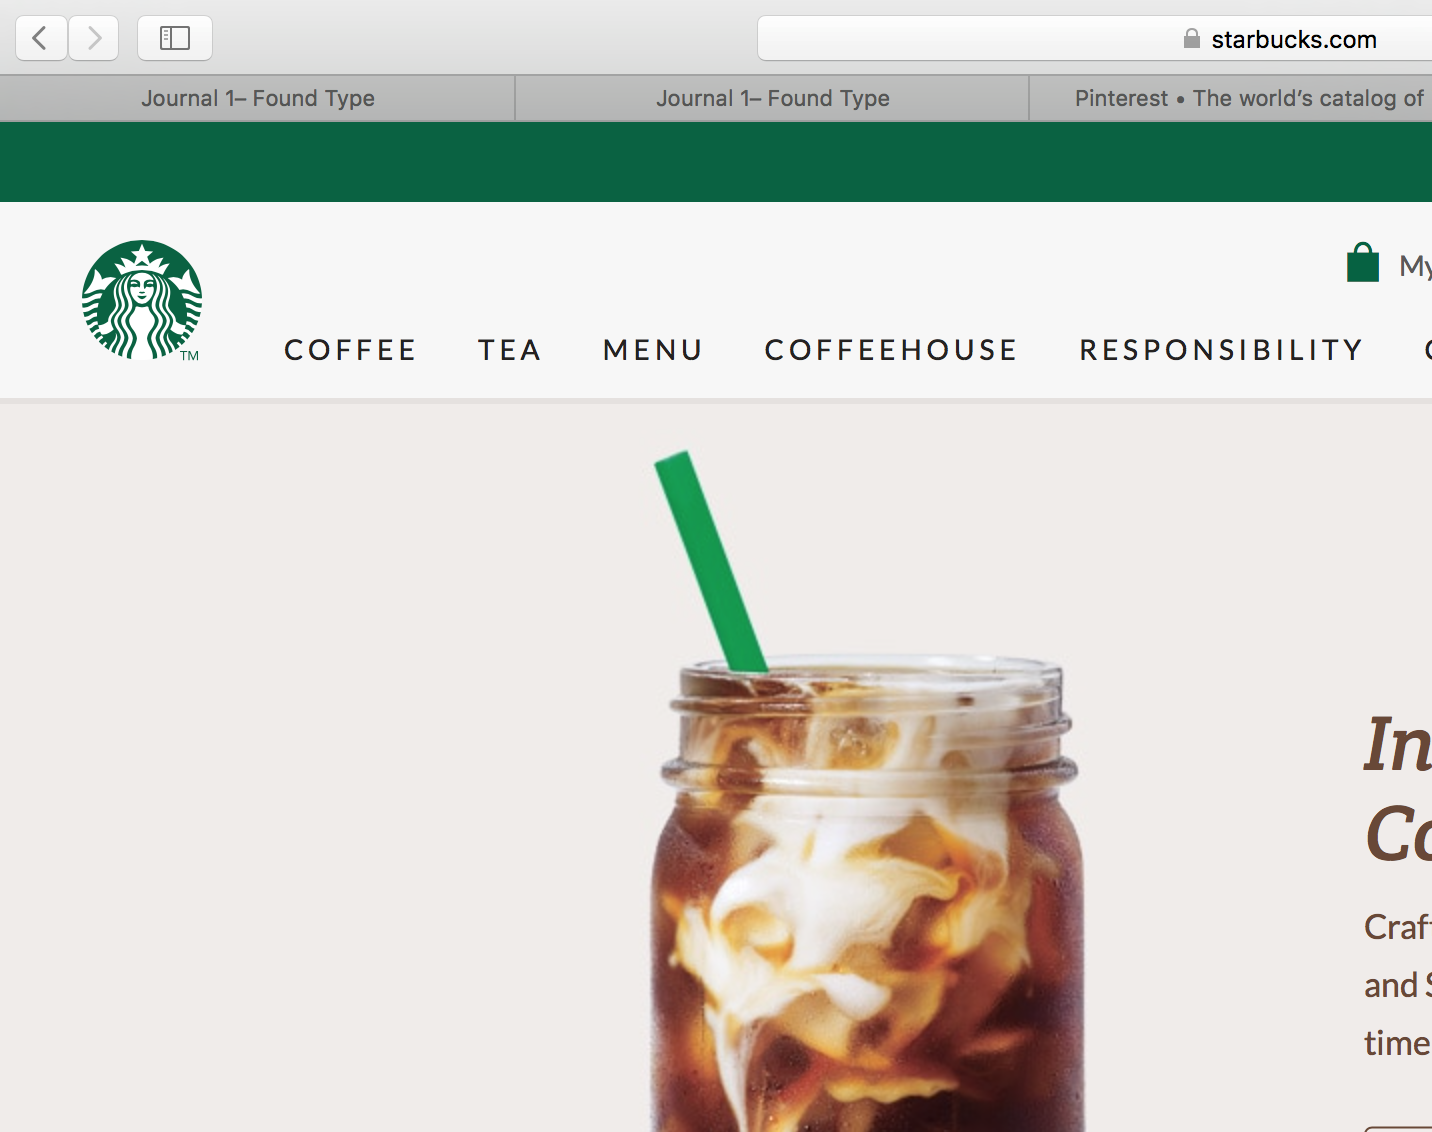 At the bottom right of the starbucks logo is the trademark symbol at the bottom right of the starbucks logo is the trademark symbol the author mentioned buycottarizona Choice Image